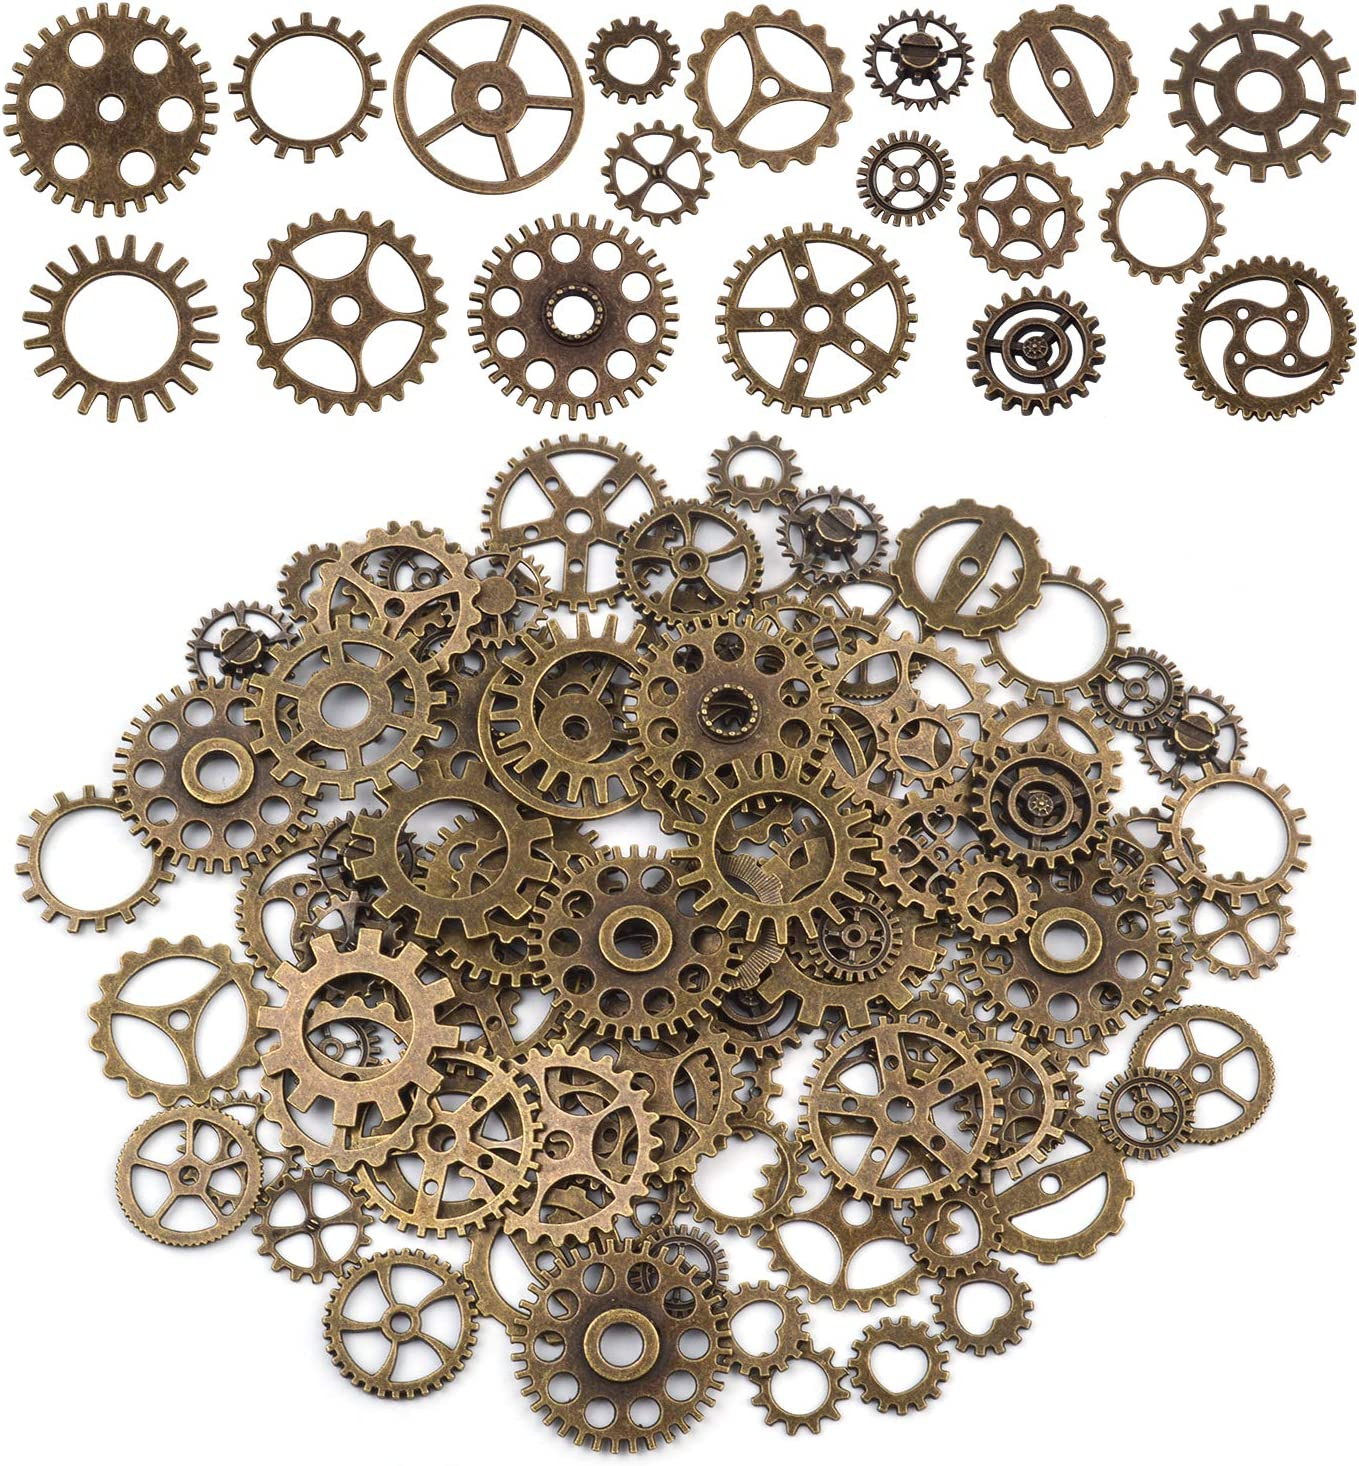 160 GEAR CHARMS PENDANTS STEAMPUNK COGS AND GEARS MADE FROM ALLOY 15mm CRAFT